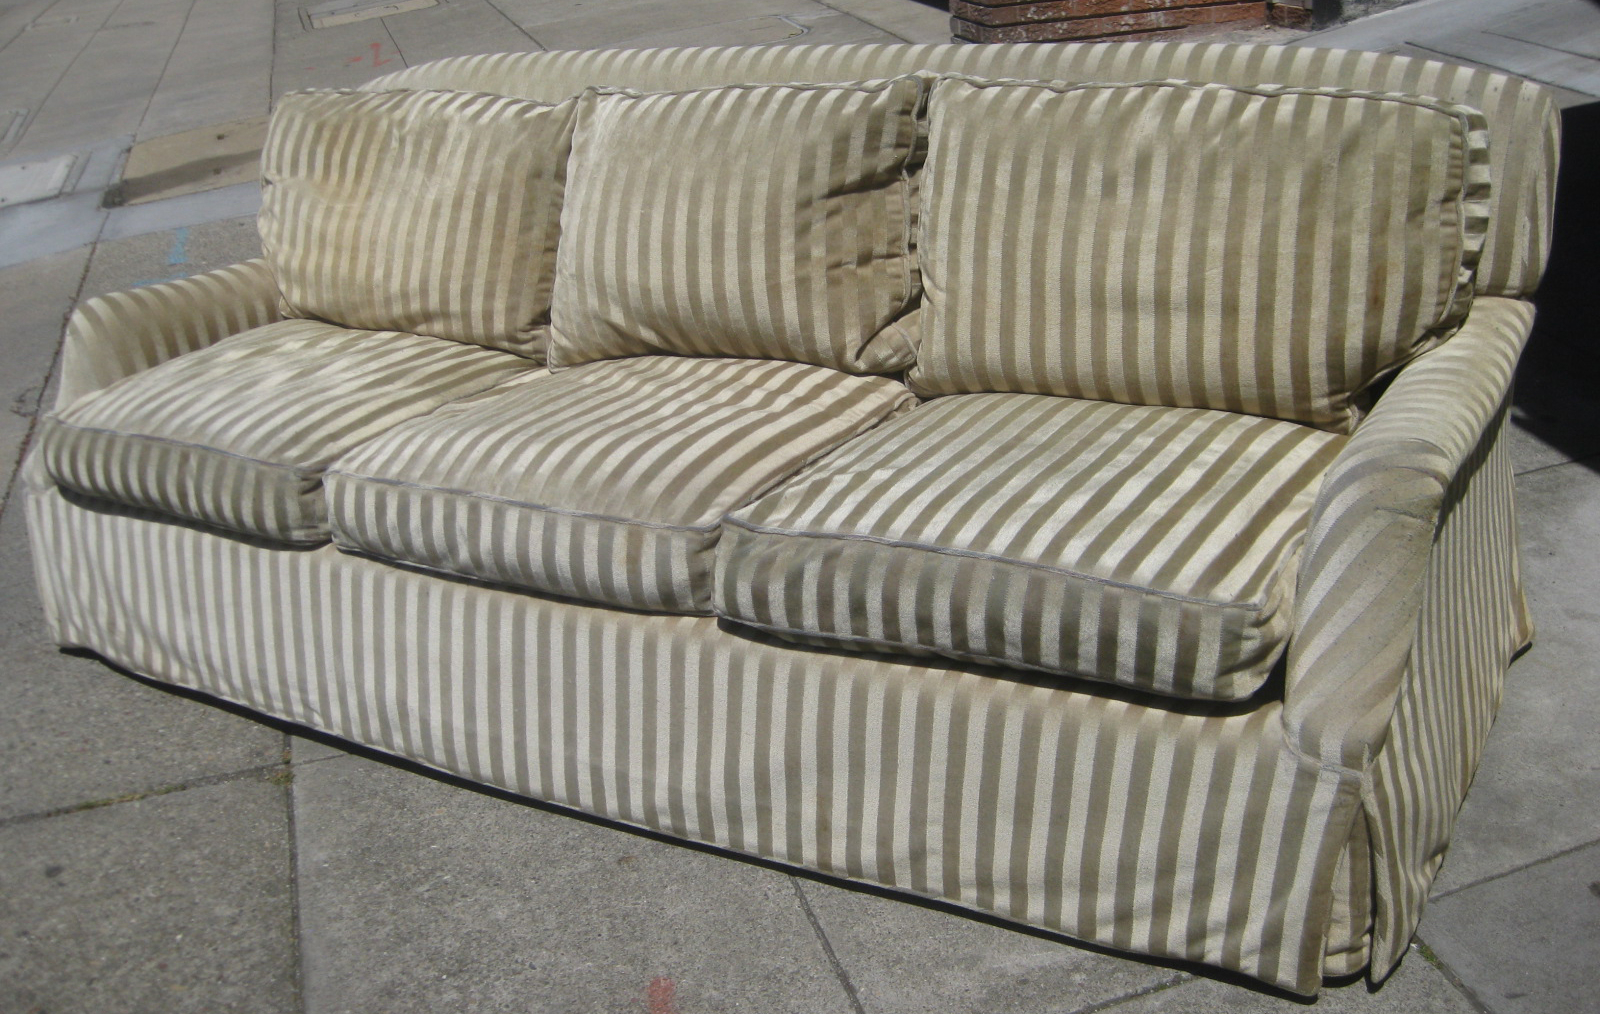 Uhuru Furniture & Collectibles: Sold – Down Filled Sofa – $120 Pertaining To Down Filled Sofas (View 11 of 15)